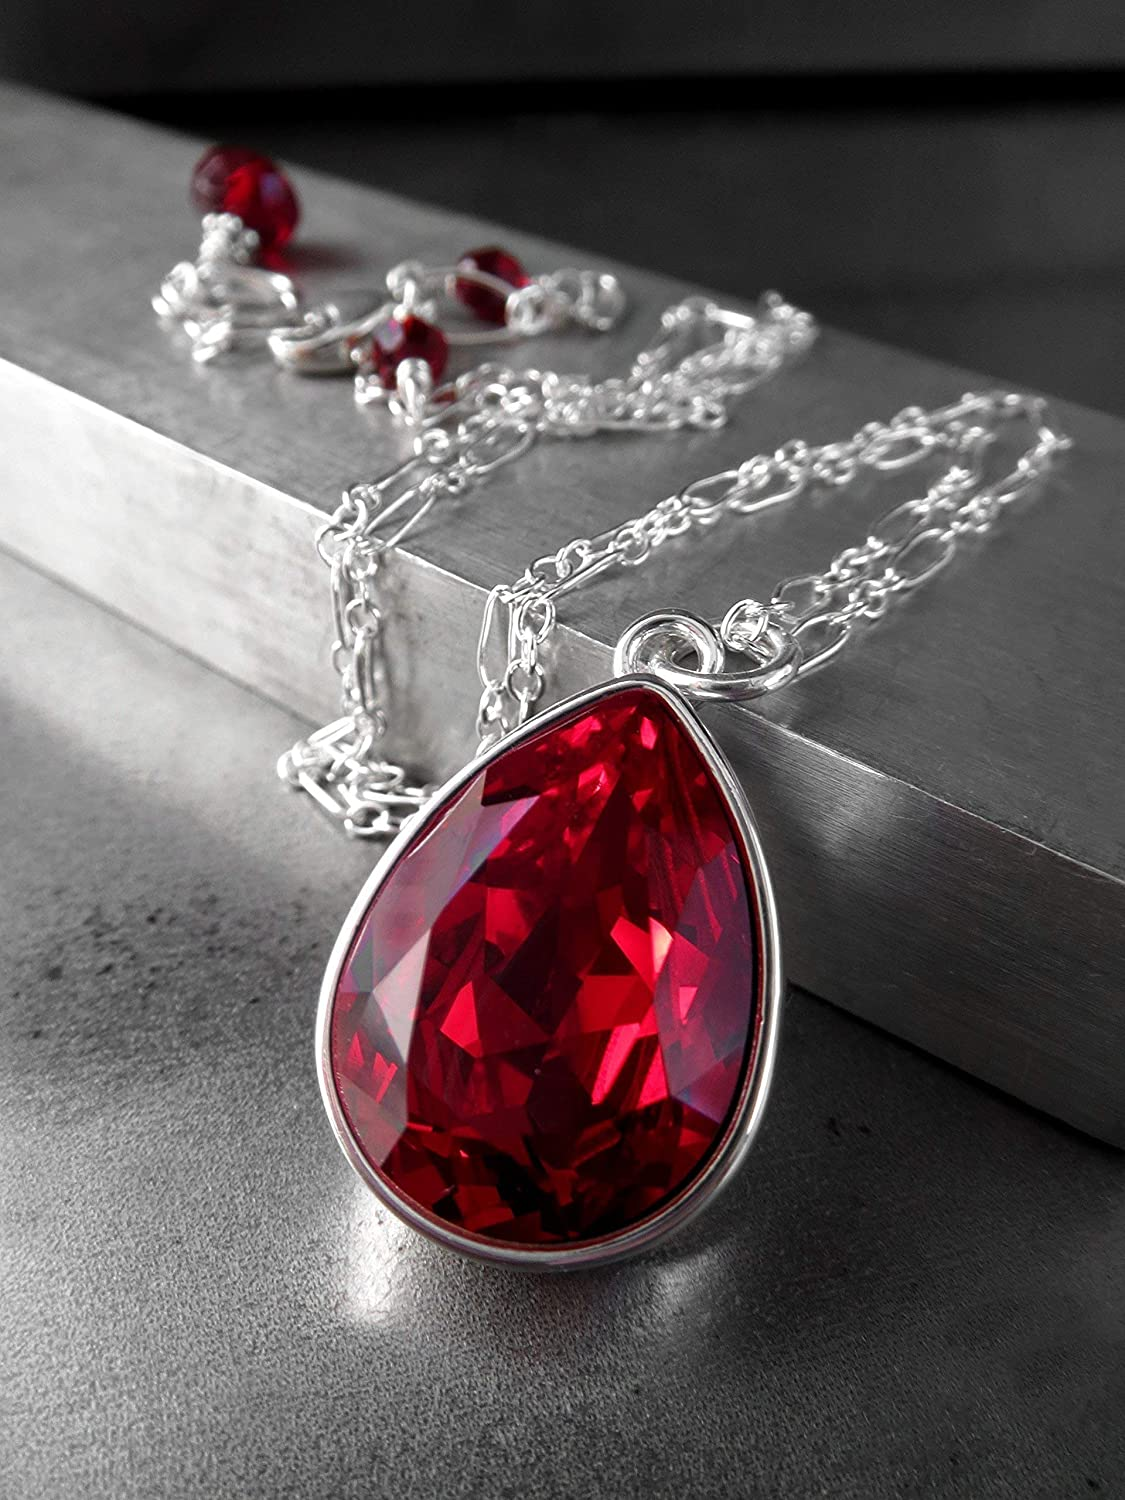 Amazon.com  Deep Red Crystal Teardrop Pendant Necklace with Swarovski  Crystal - Christmas   Valentines Day Jewelry  Handmade b4a59a27c0